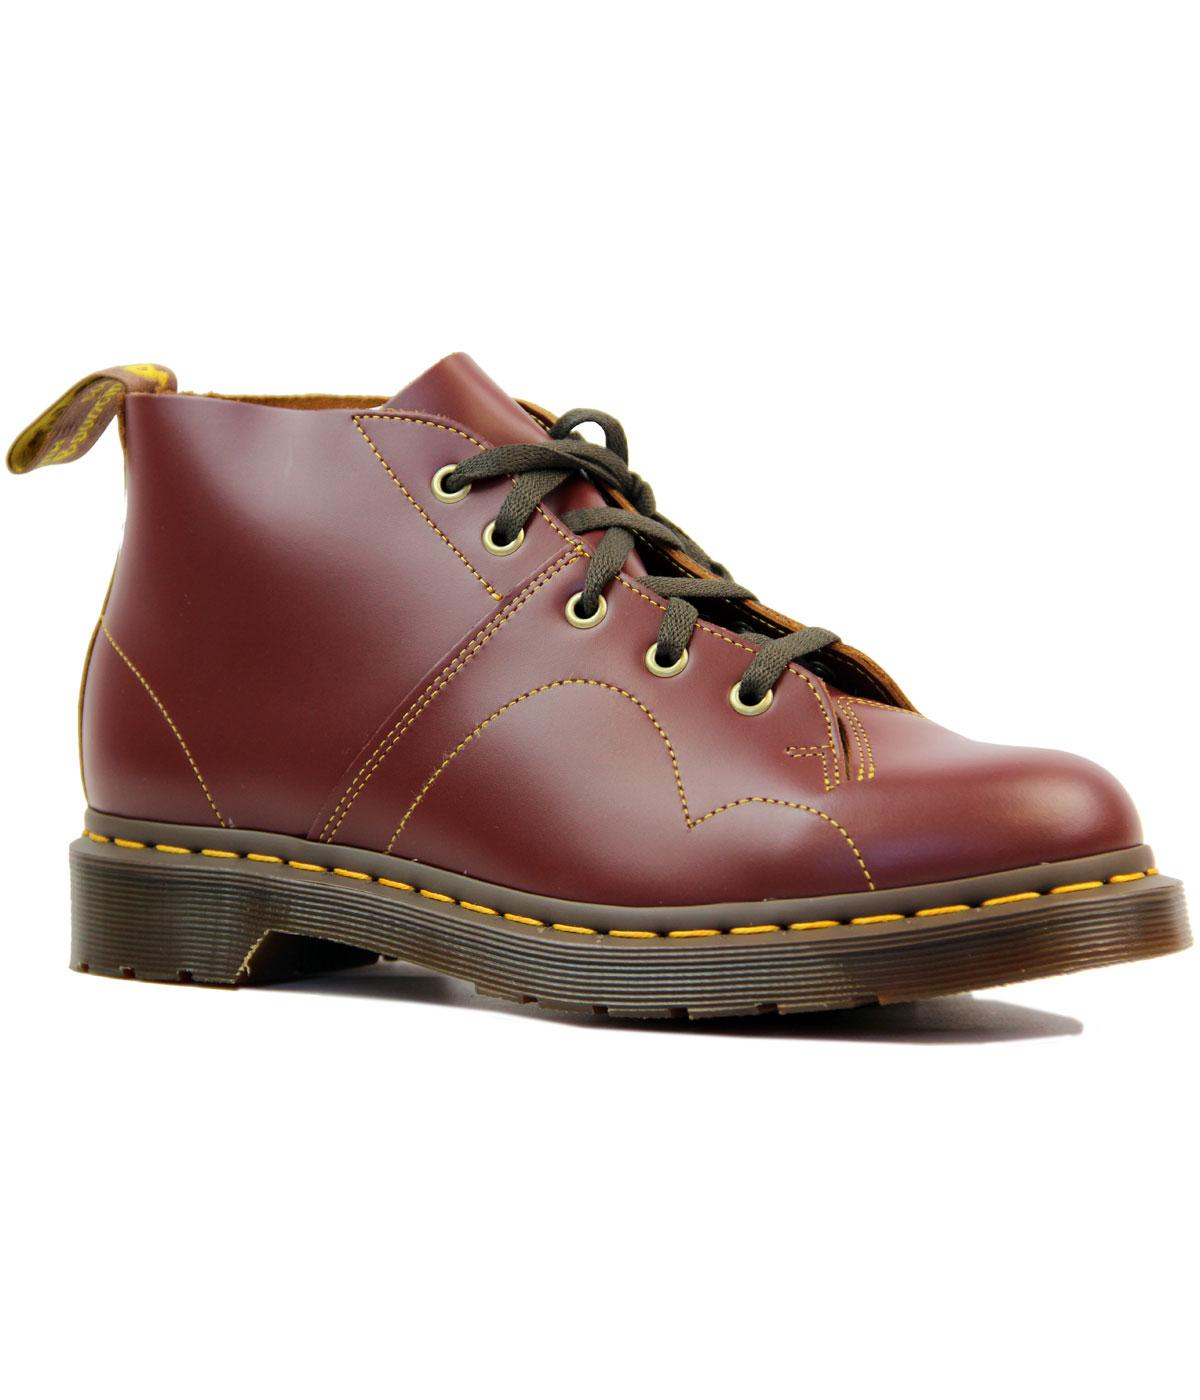 difficile zattera omicidio  Dr Martens Church Retro Mod Smooth Leather Monkey Boots Oxblood